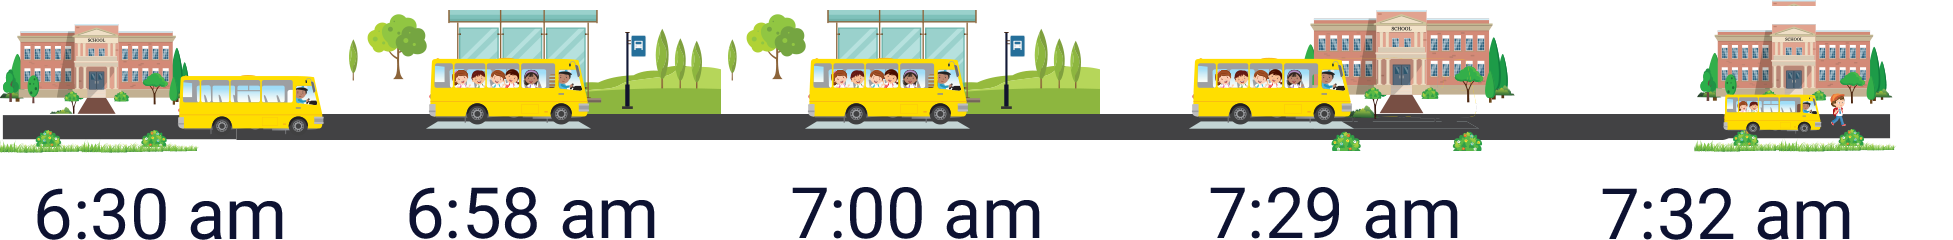 School Bus Monitoring Solutions With Gps Tracking For Children Safety